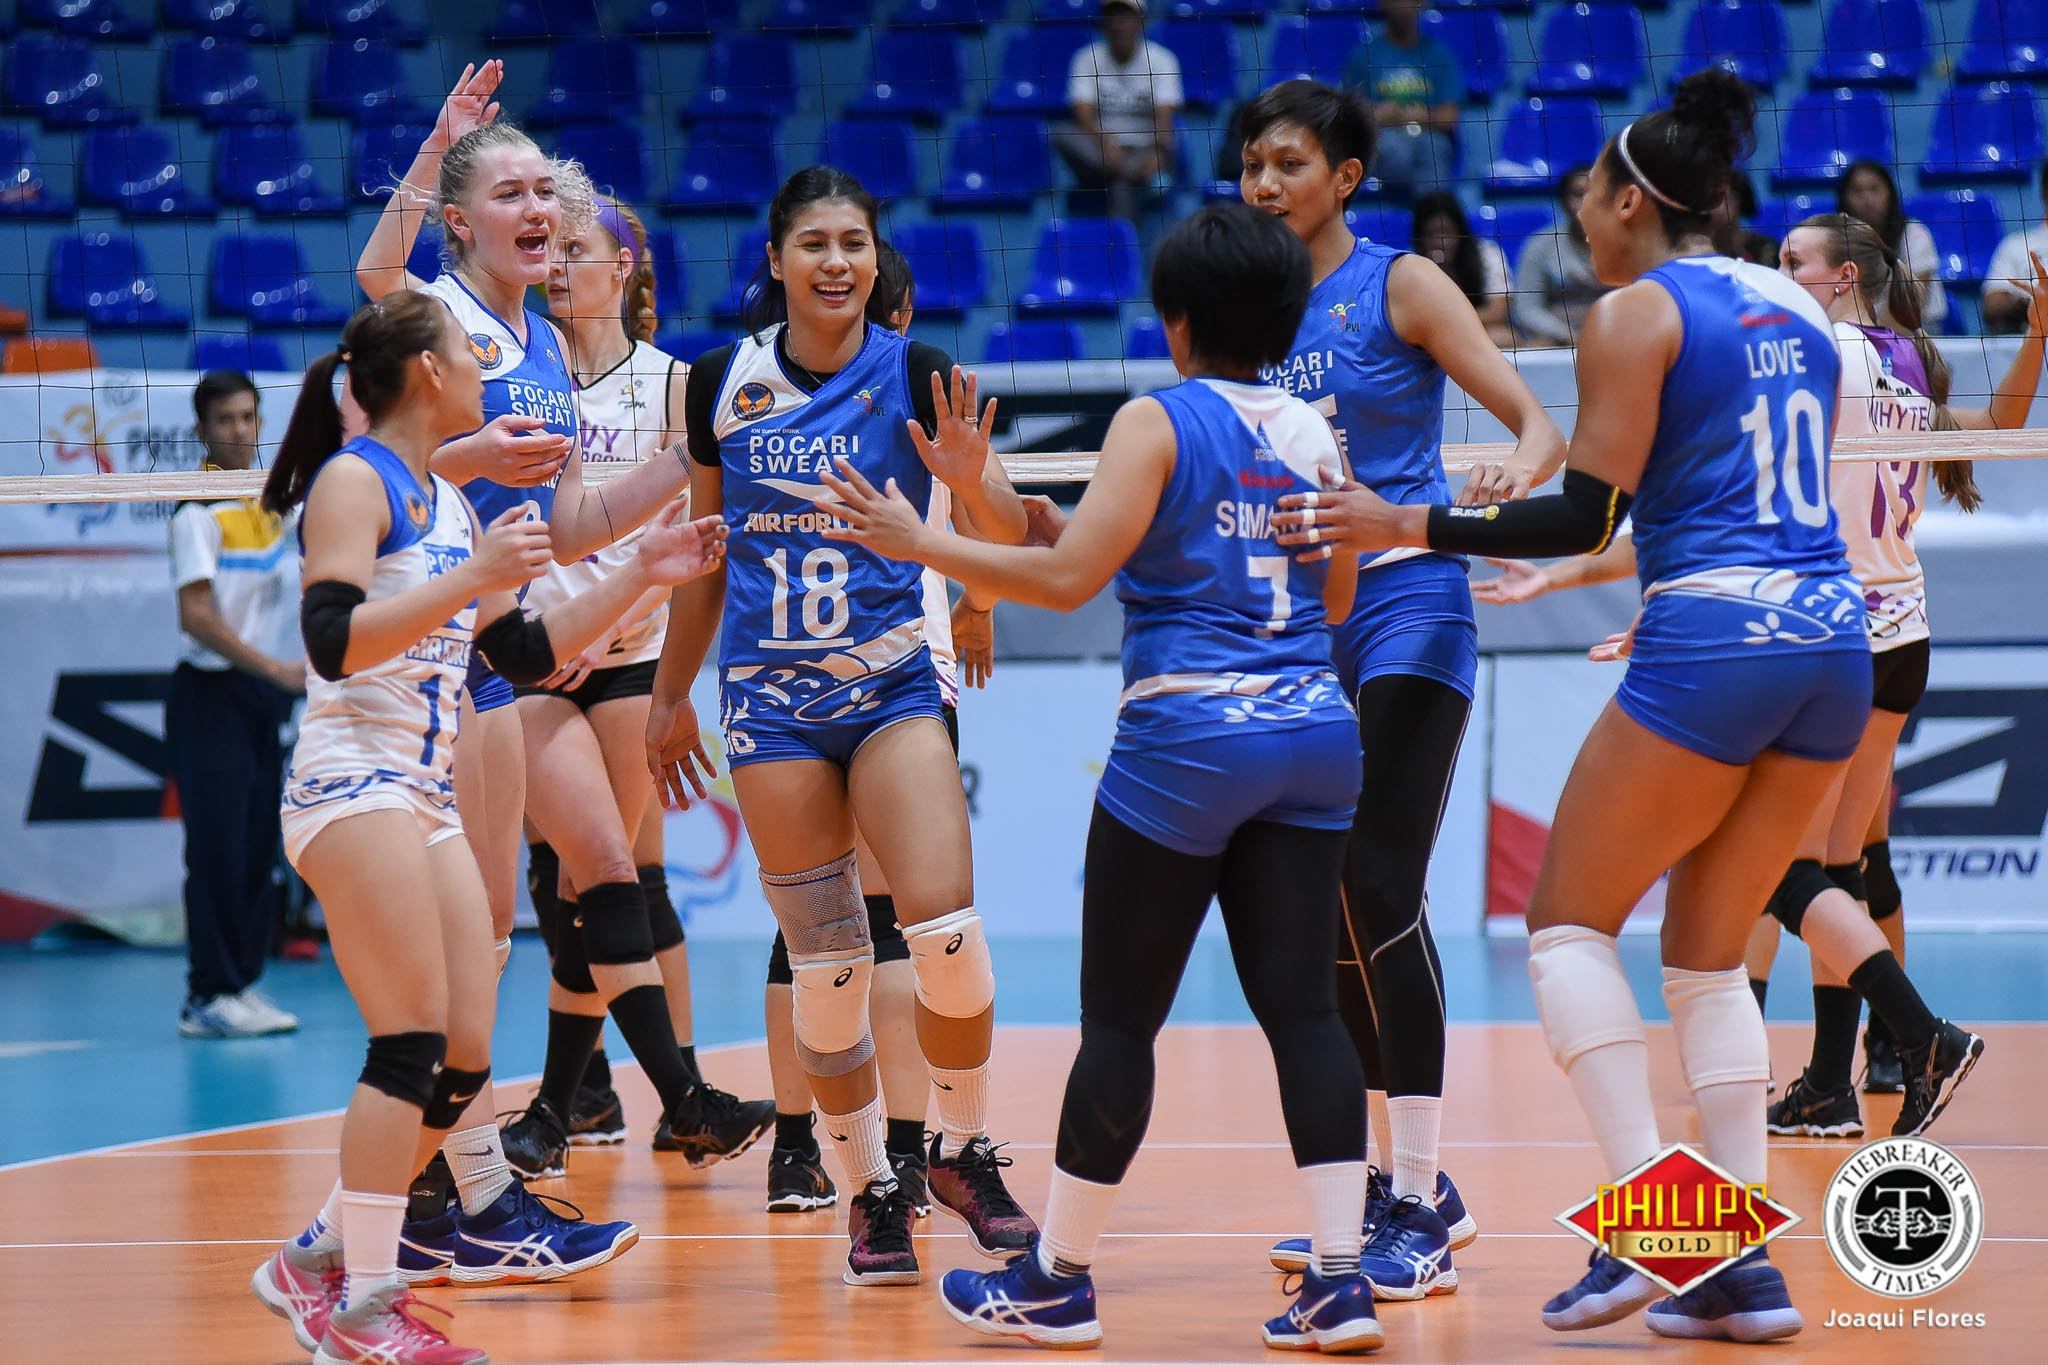 Tiebreaker Times Pocari Sweat-Air Force shakes off Bali Pure-NU, forges three-way tie for second News PVL Volleyball  Wendy Semana Pocari Sweat-Air Force Lady Warriors Myla Pablo Jellie Tempiatura Jasper Jimenez Janisa Johnson Bali Pure-NU Purest Water Defenders Babes Castillo Arielle Love Alexis Matthews 2018 PVL Women's Reinforced Conference 2018 PVL Season